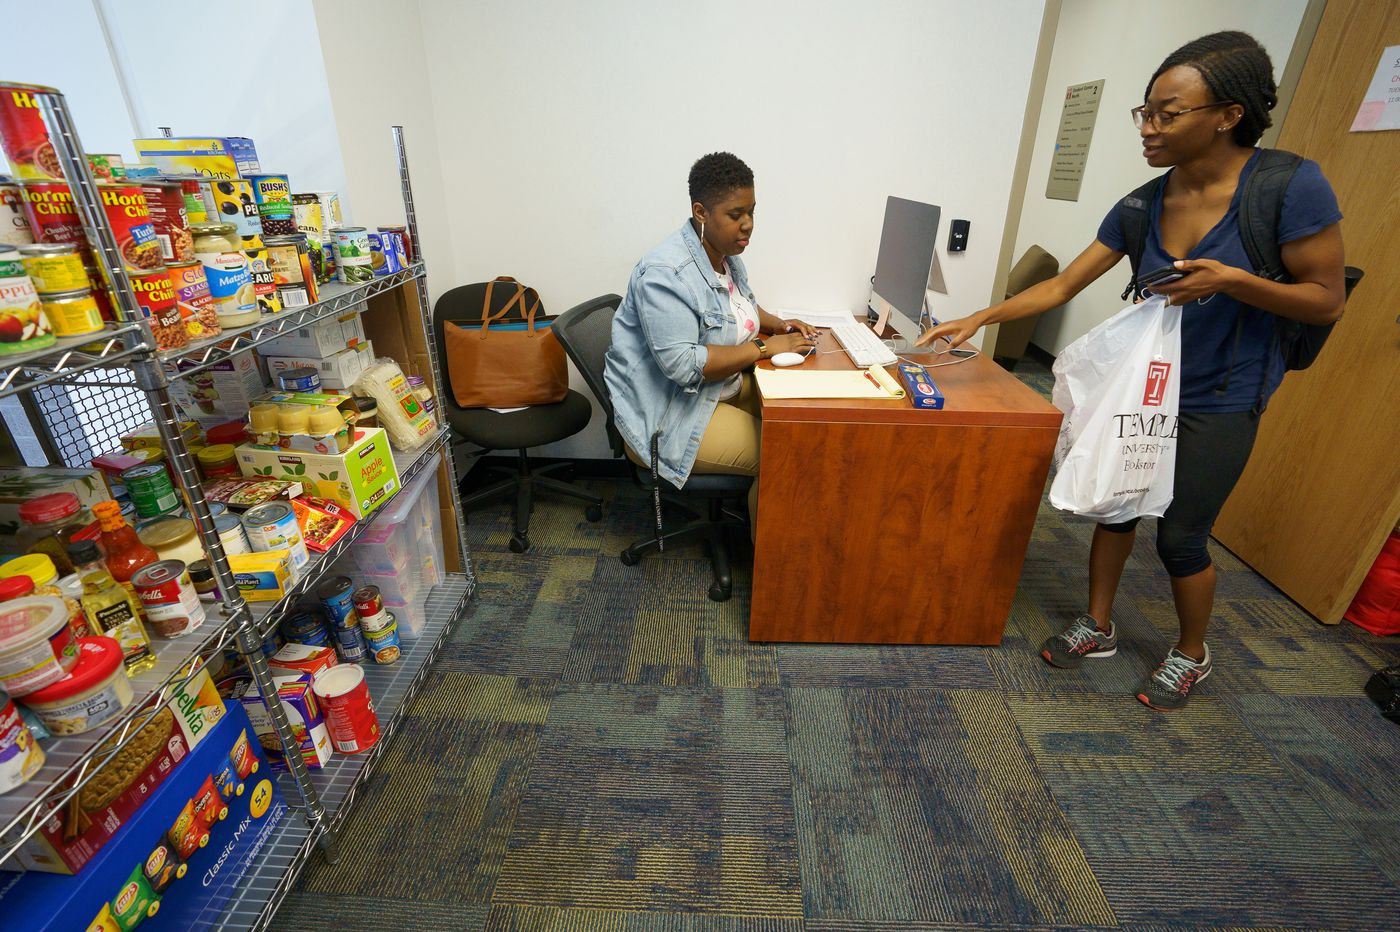 At Temple, campus food pantry becomes summer lifeline for hungry students